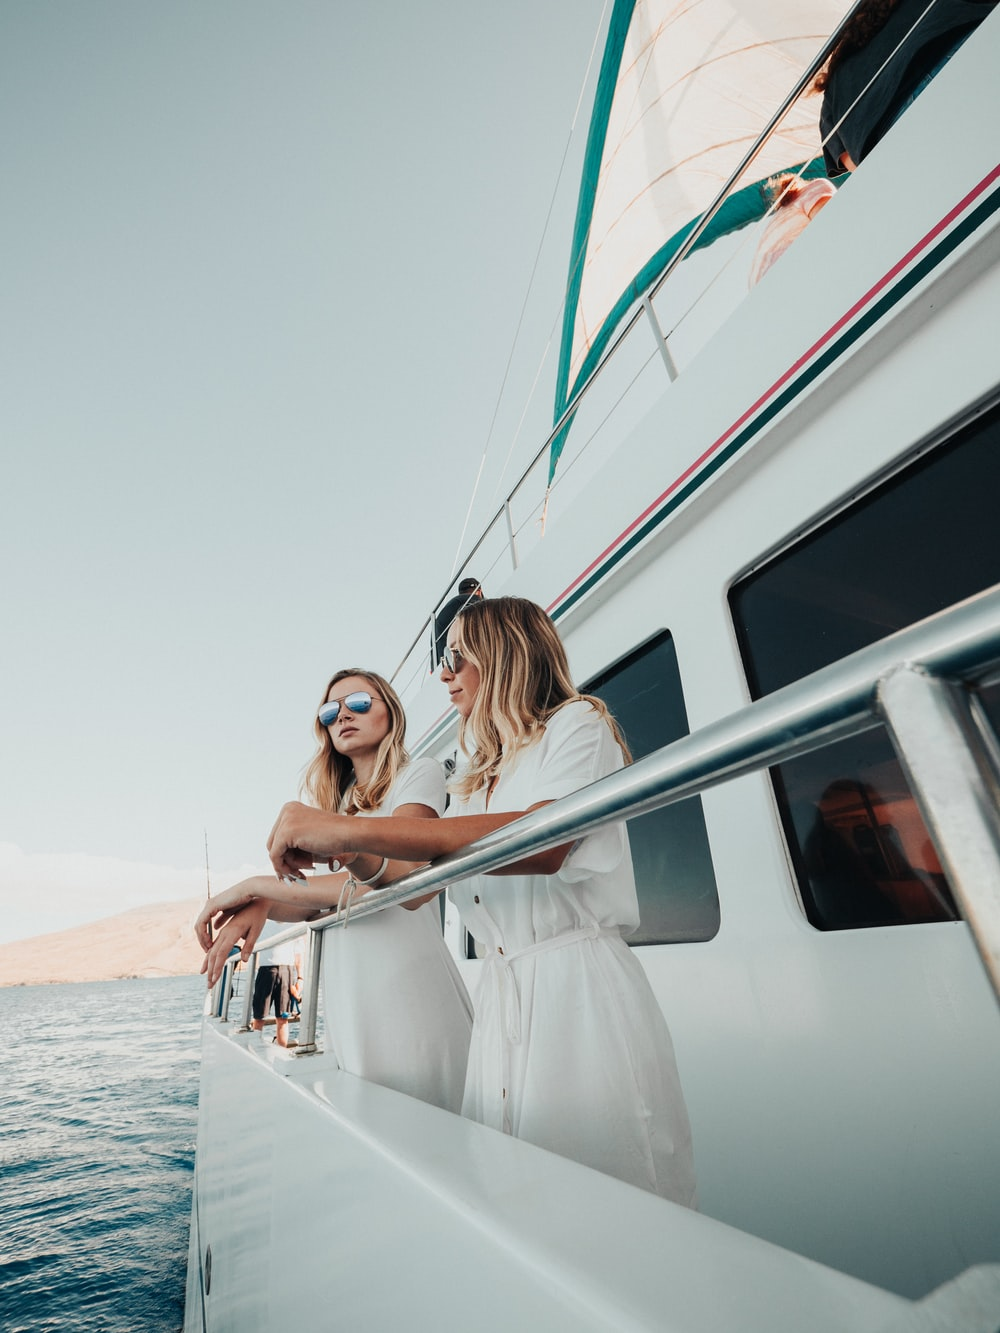 two women standing on yacht during daytime